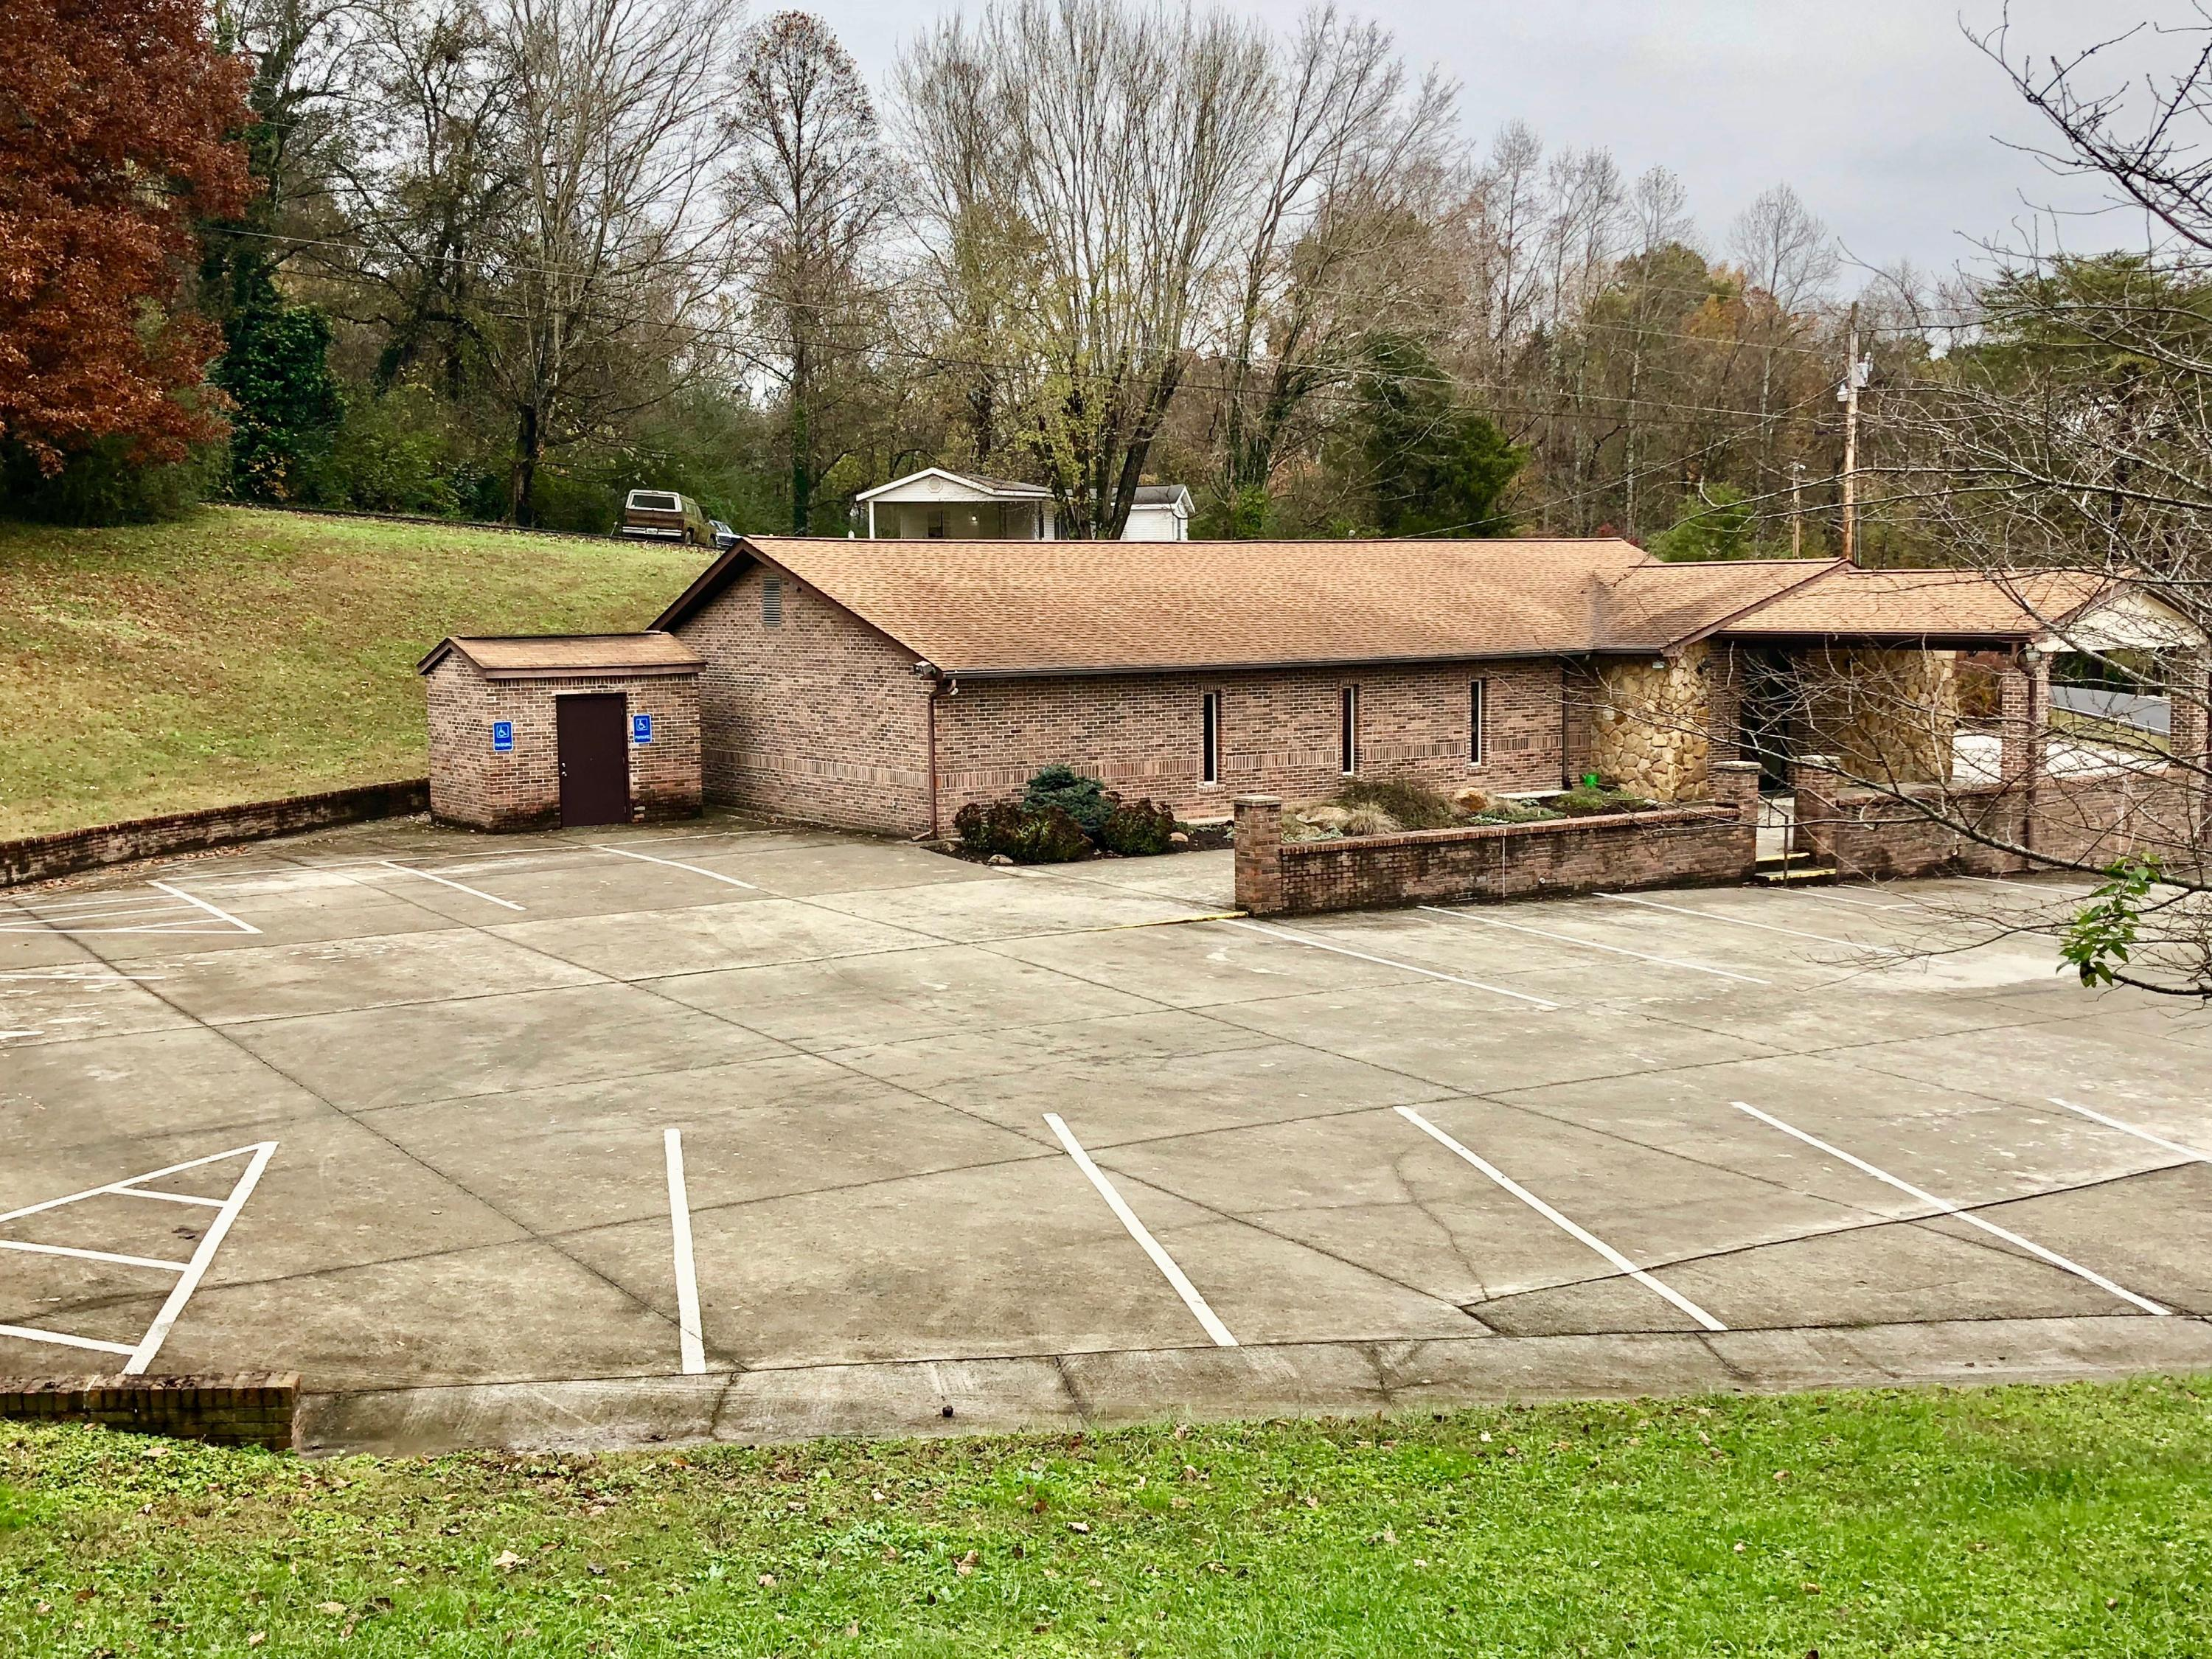 20190612181843445111000000-o Clinton anderson county homes for sale